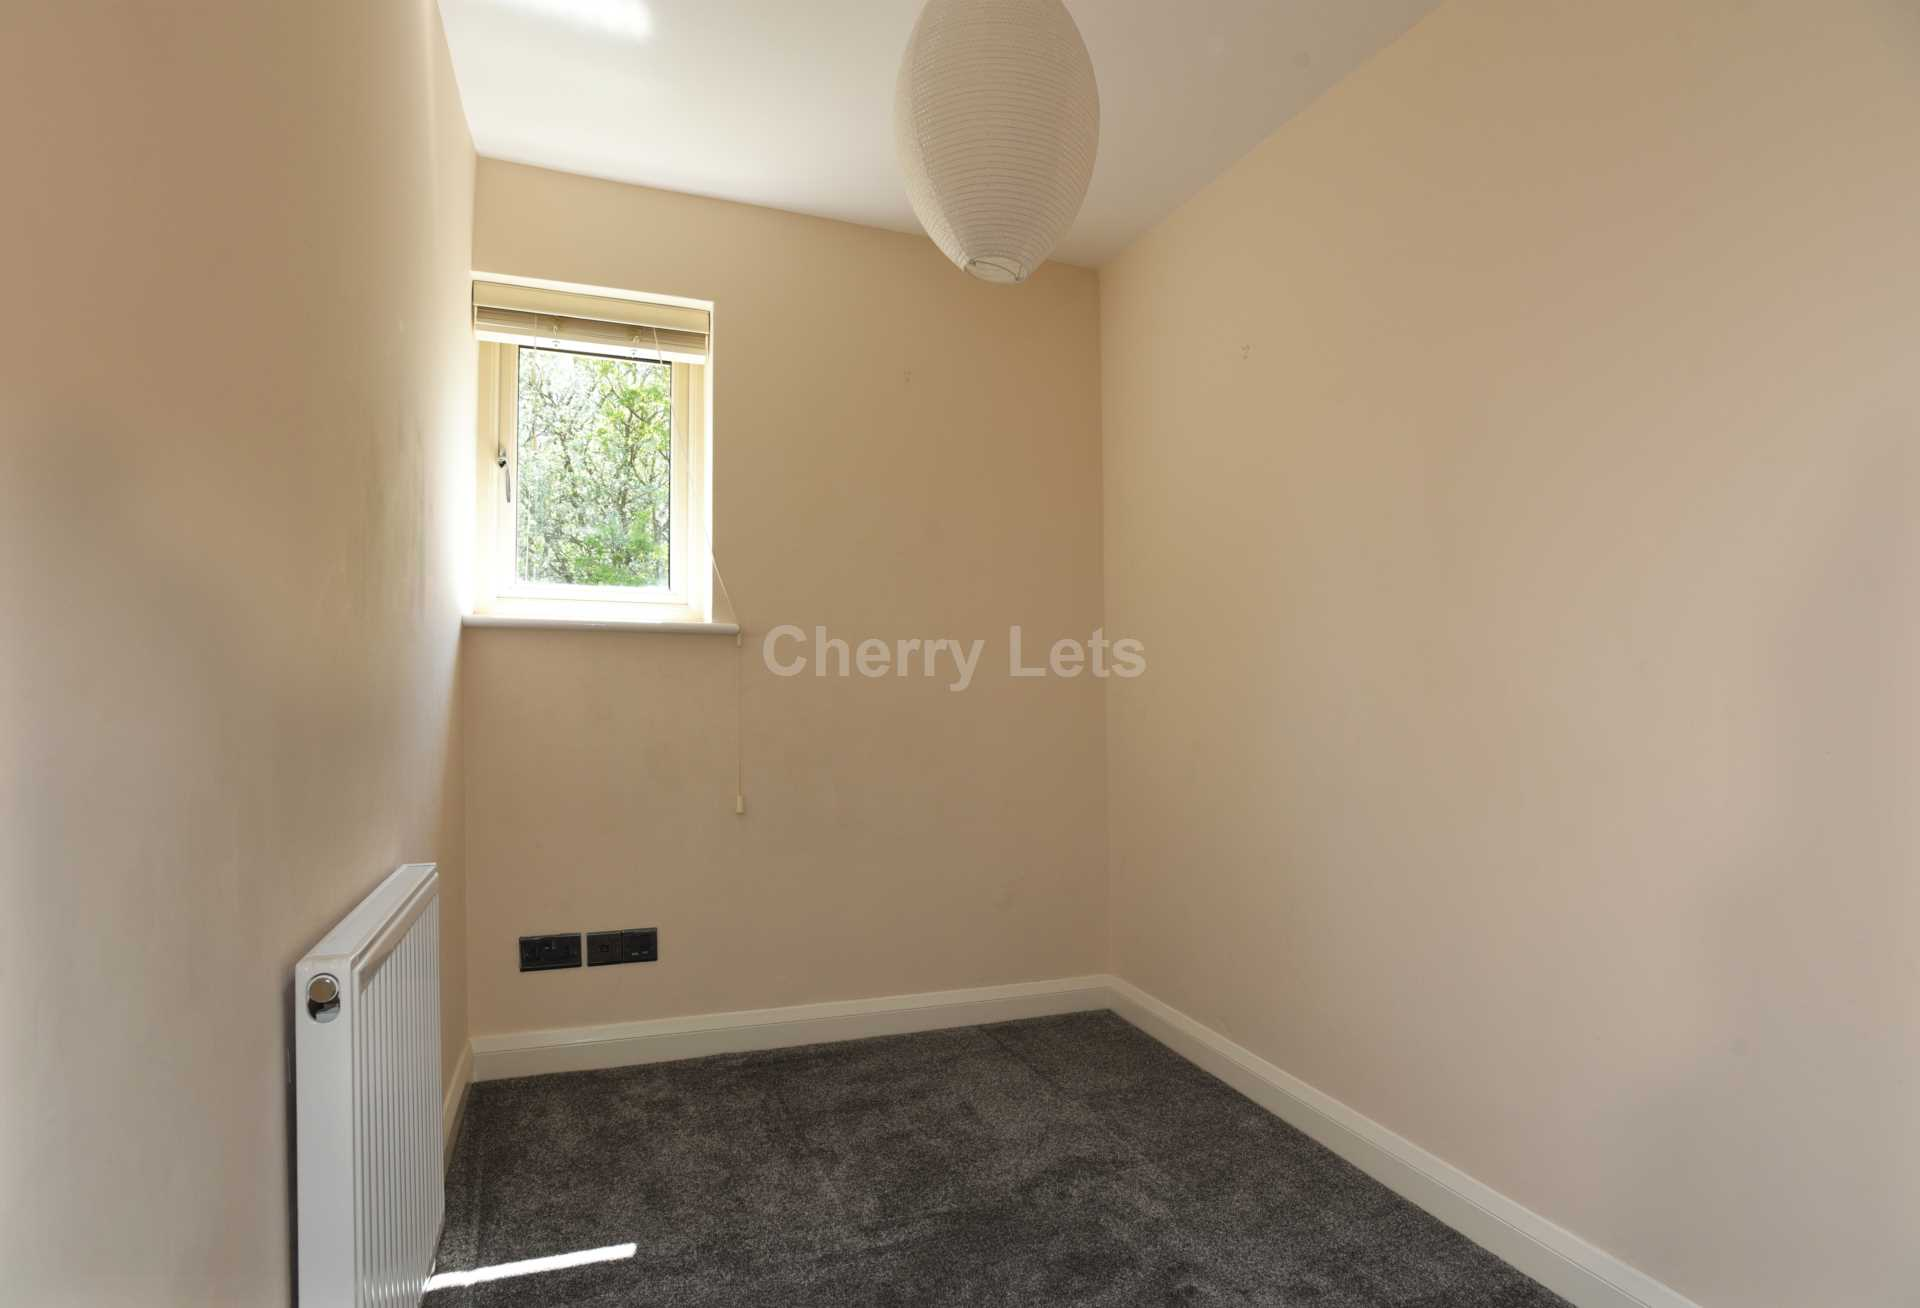 3 bed terraced house to rent in Keytes Close, Adderbury, OX17 9